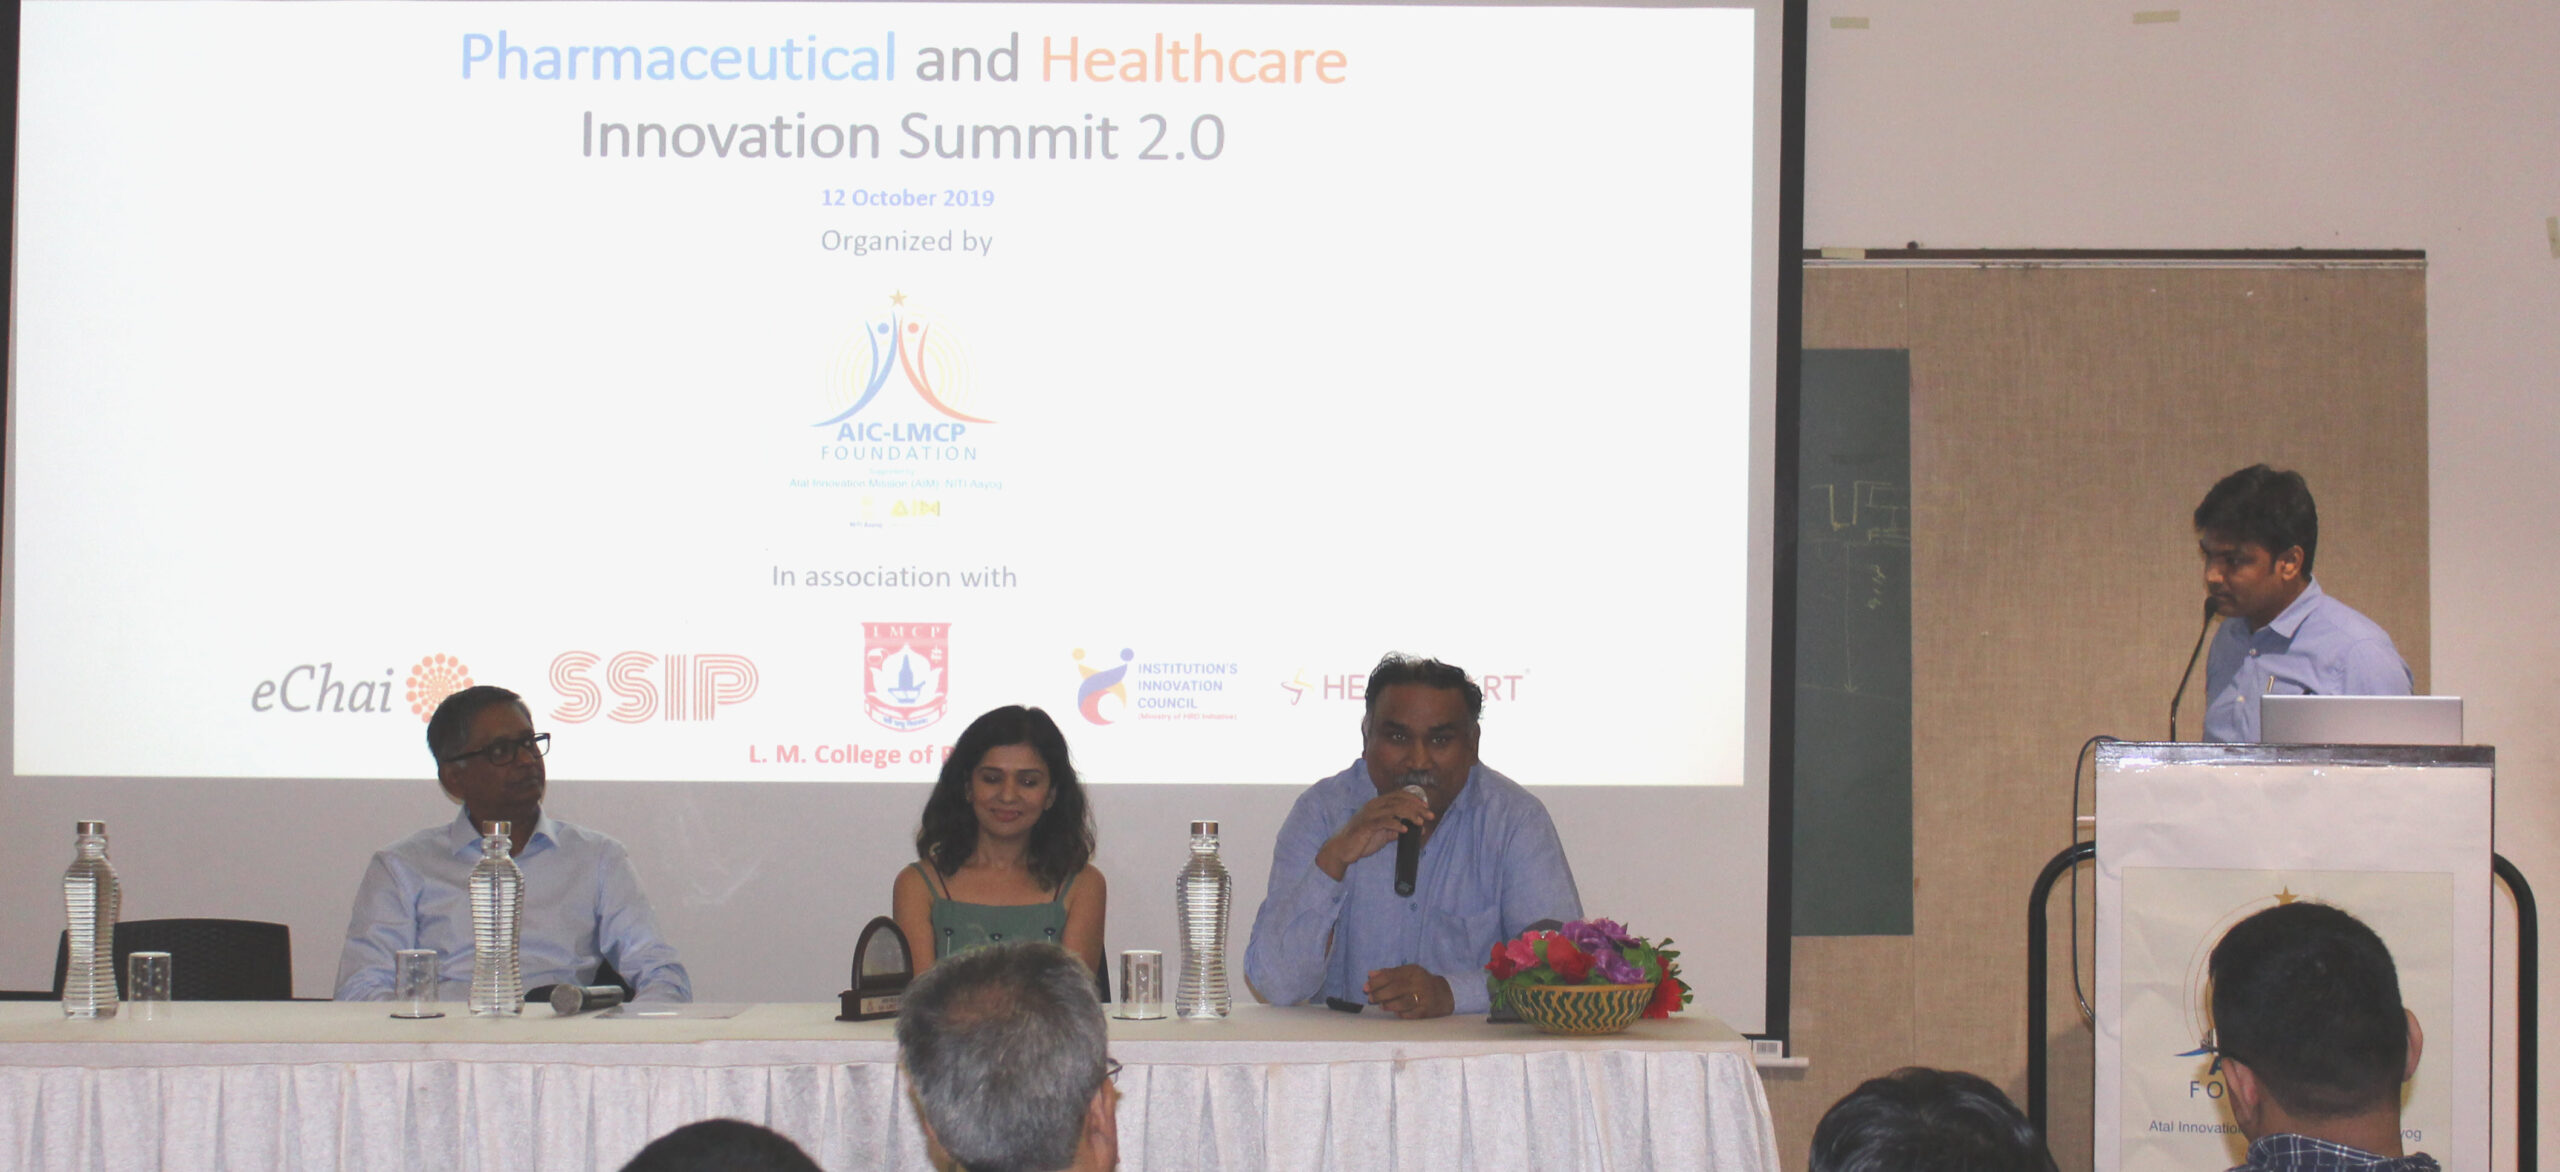 PHARMACEUTICALS AND HEALTHCARE INNOVATION SUMMIT